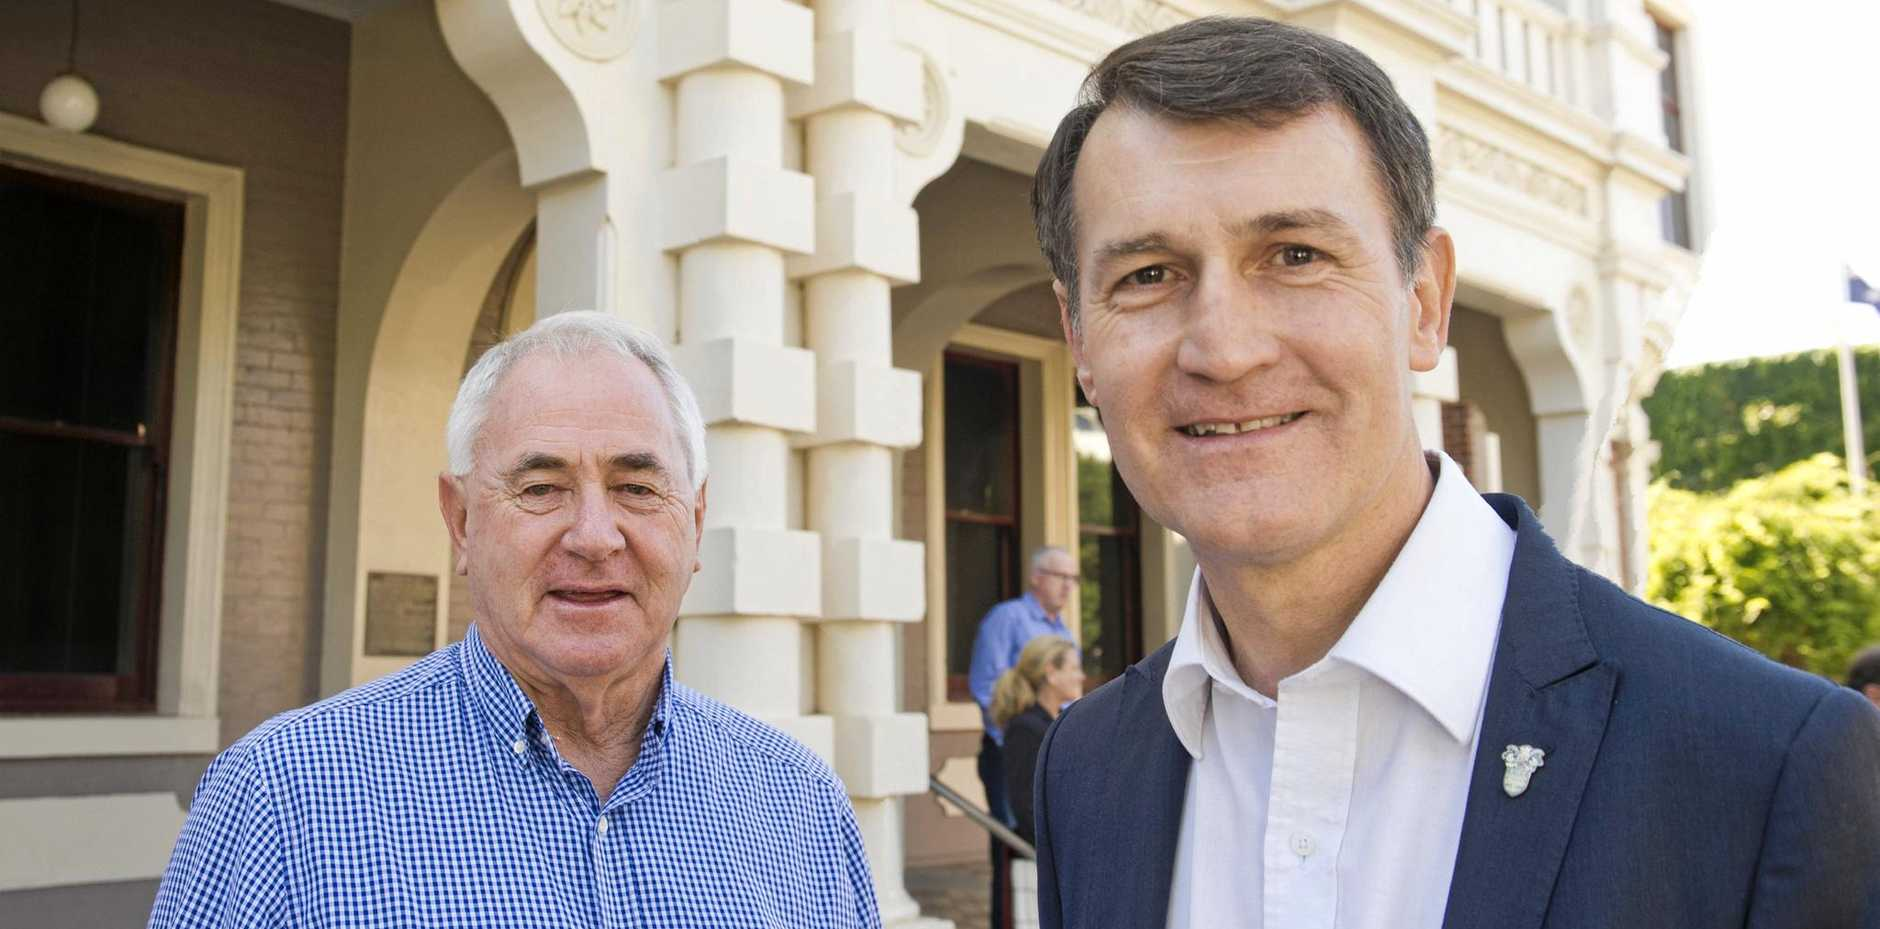 MAYORS MEET: TRC Mayor Paul Antonio and Brisbane Lord Mayor Graham Quirk prepare for the Council of Mayors meeting in the Garden. City.